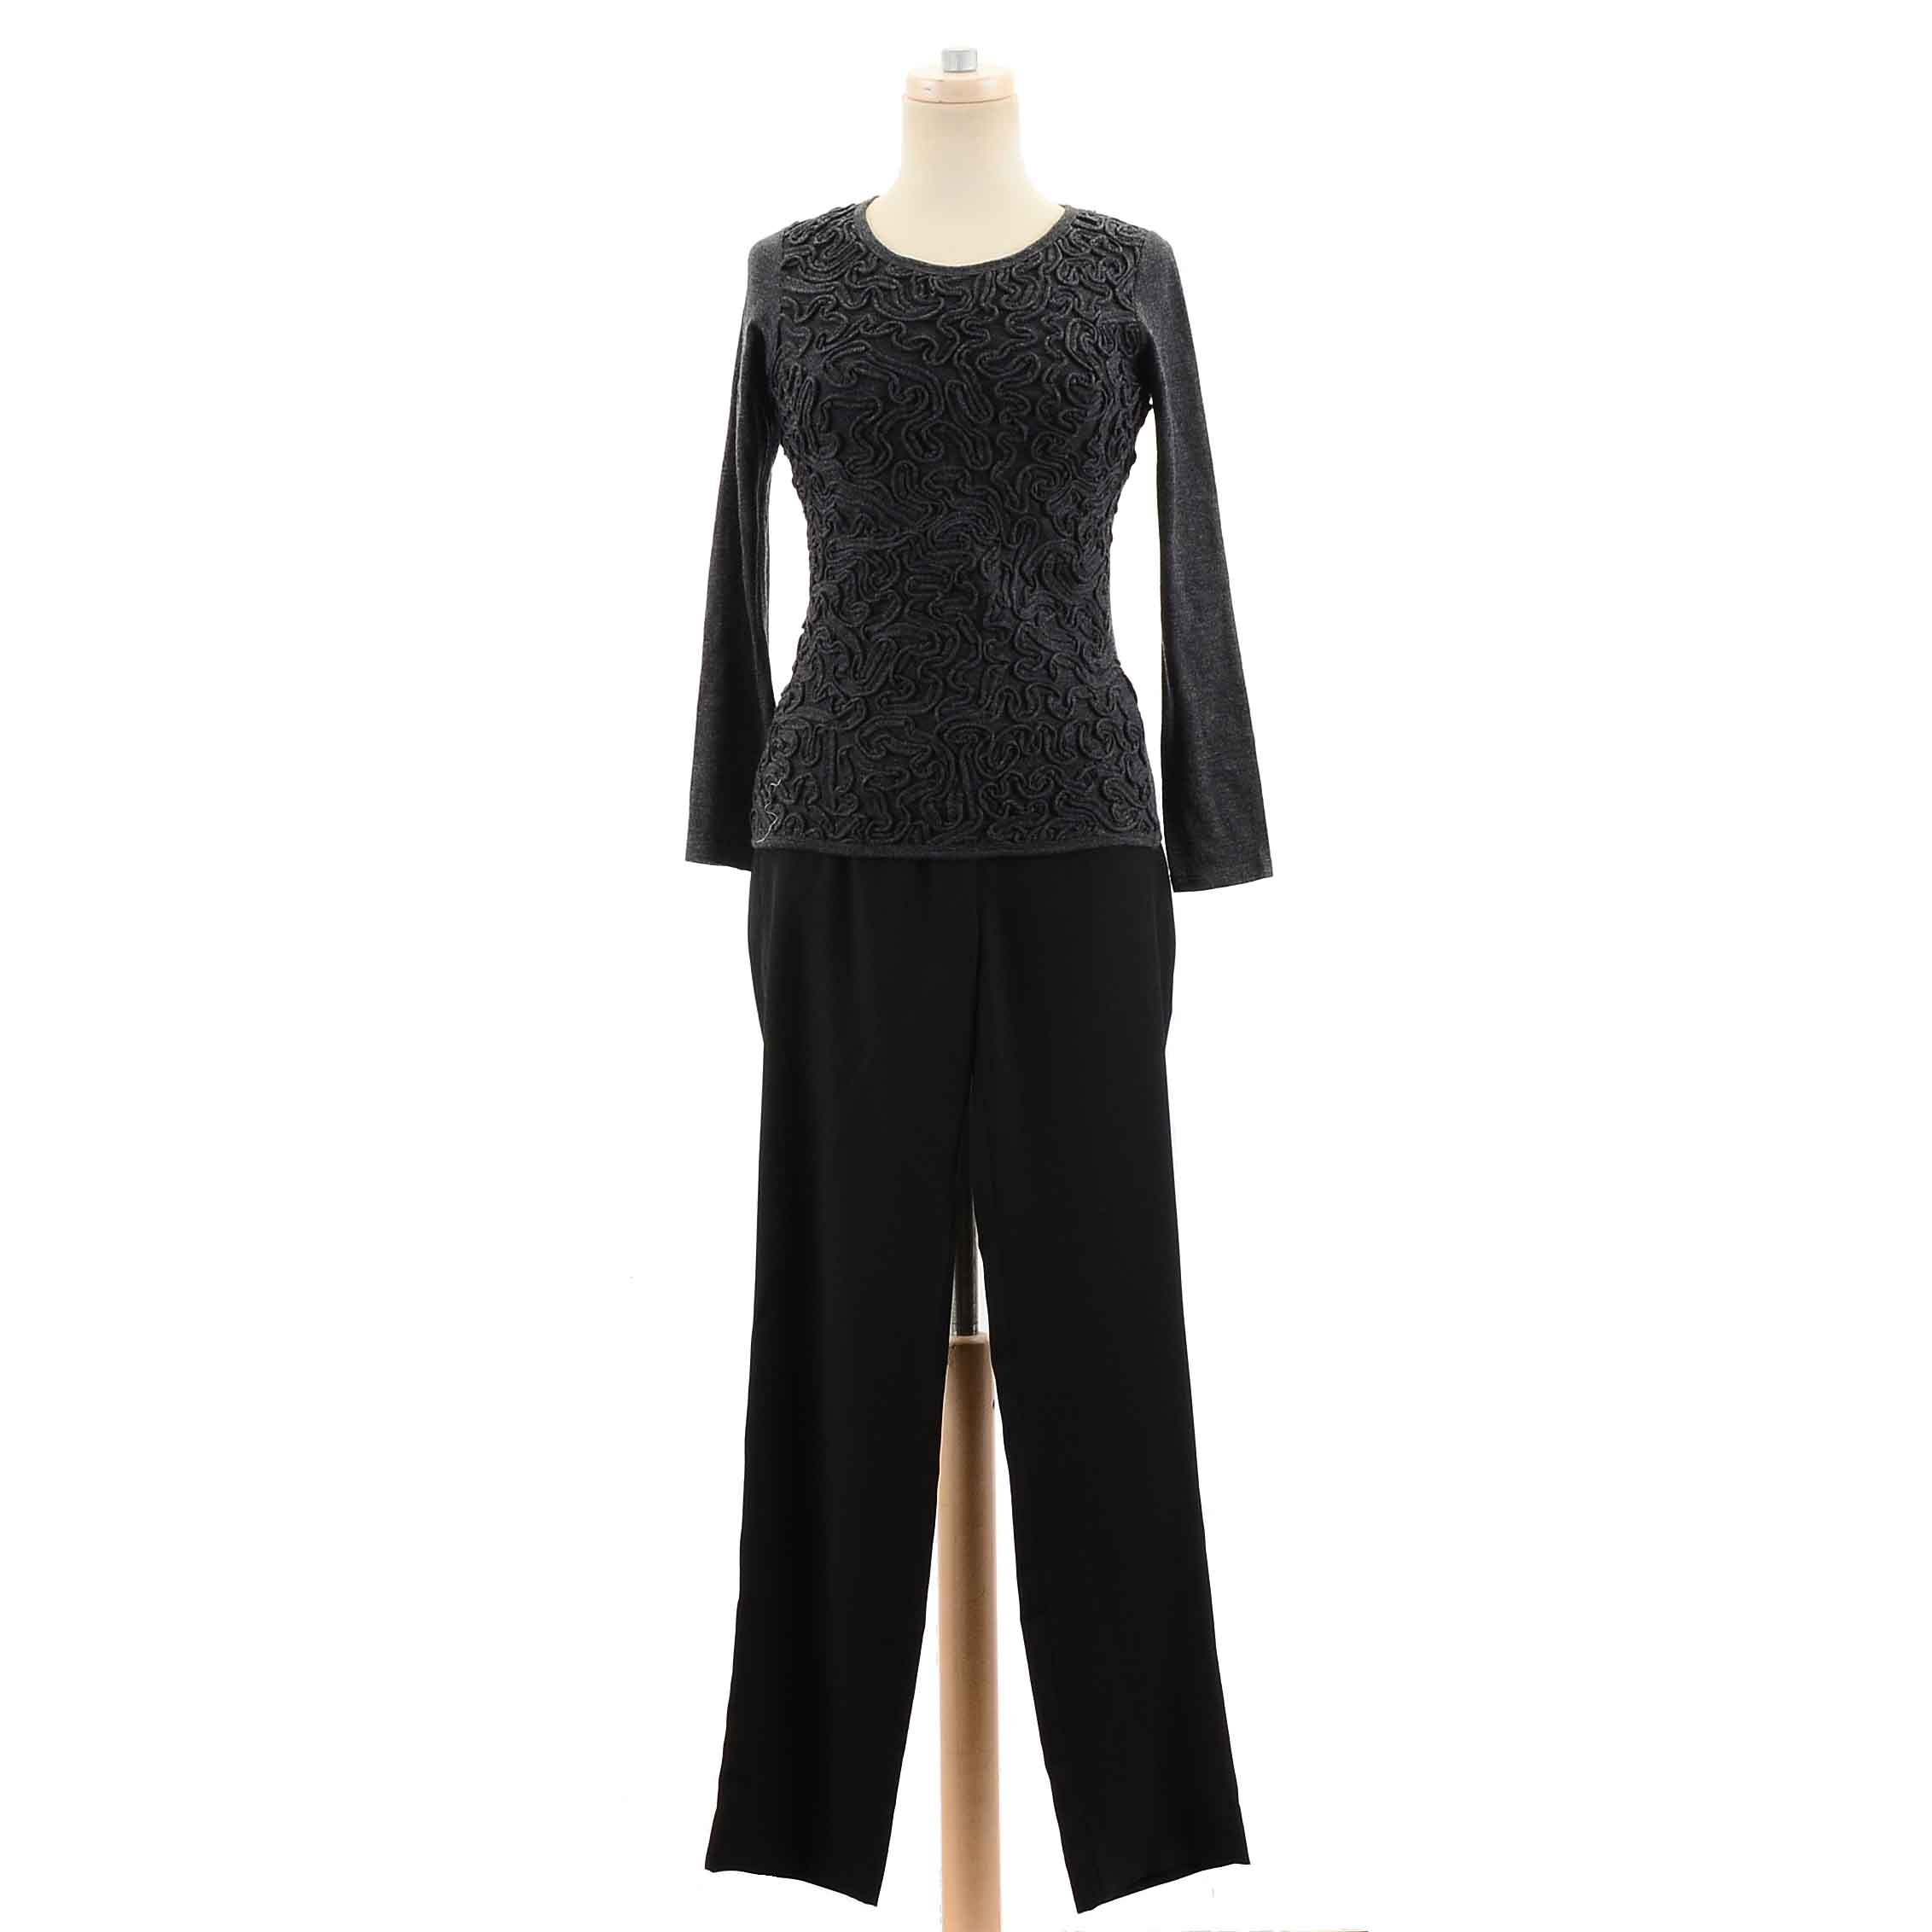 Women's Designer Separates Including Armani and Lamberto Losani